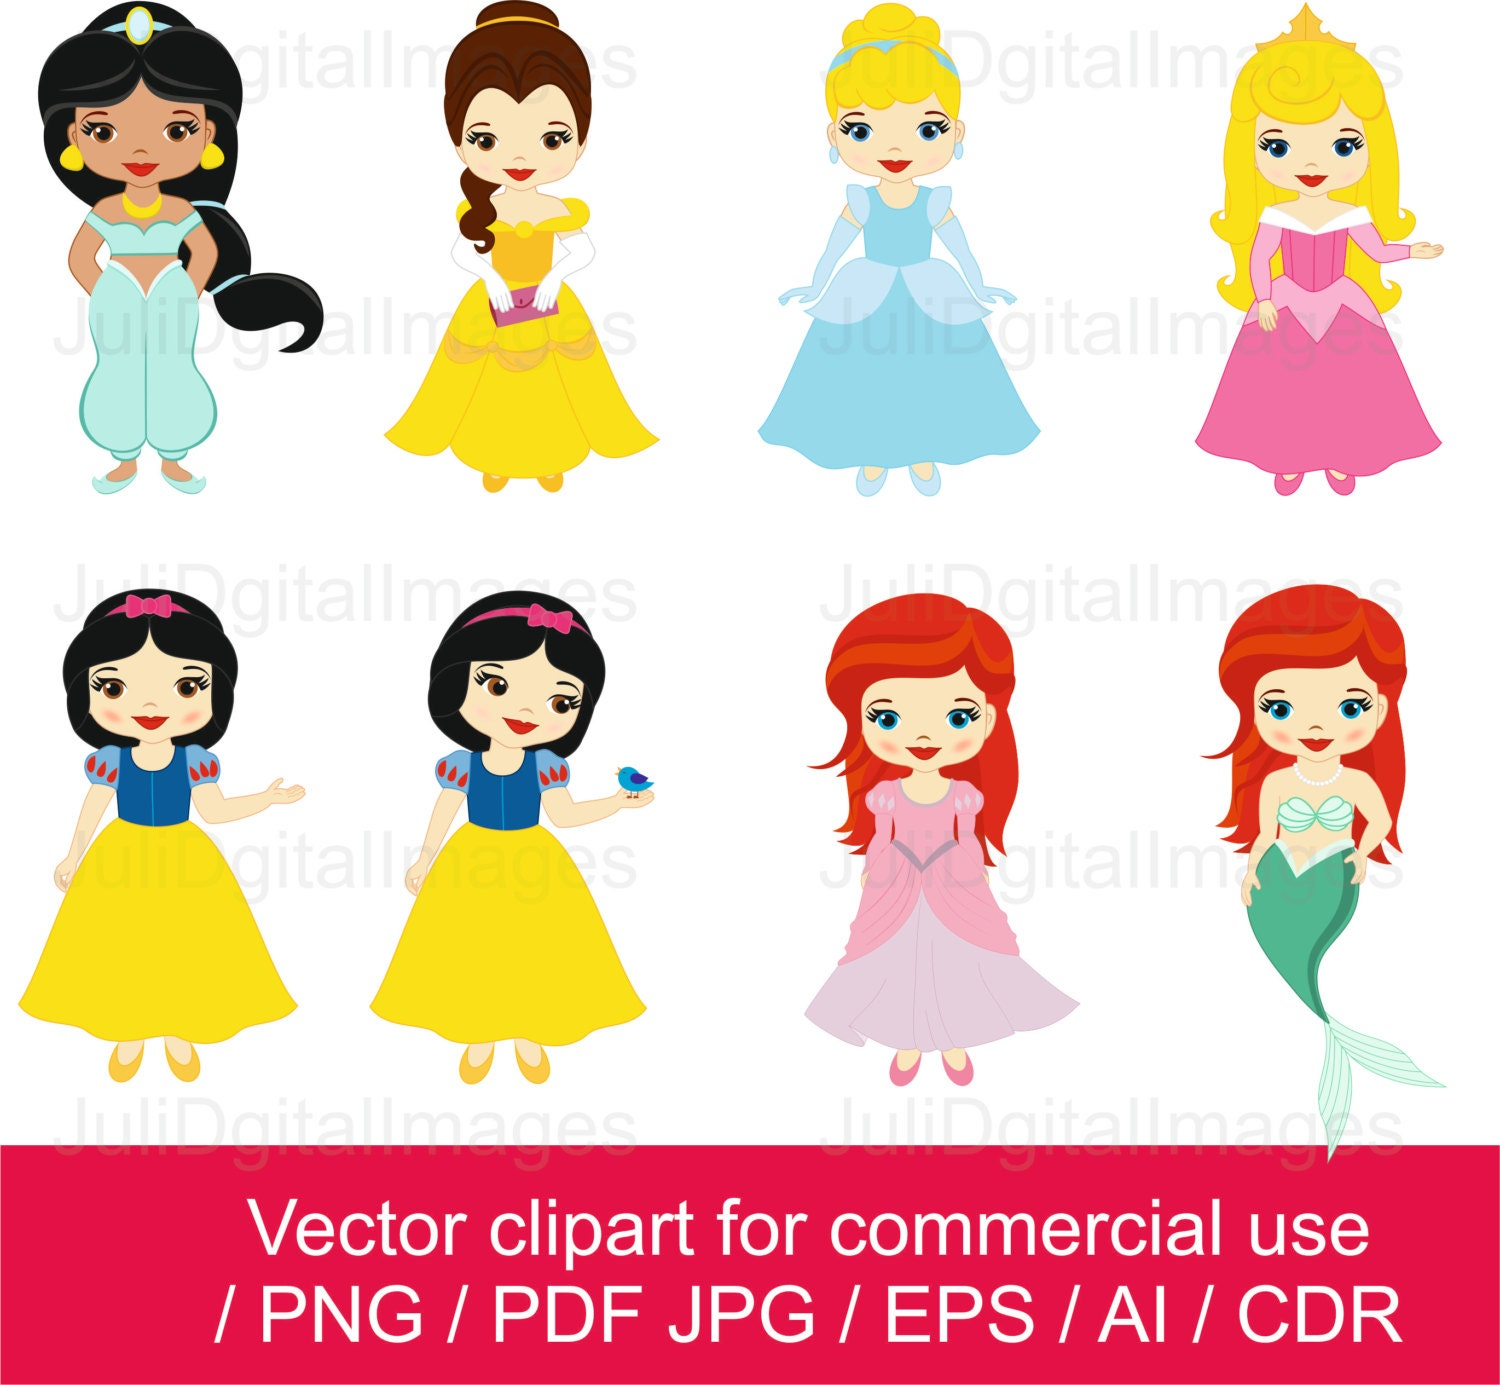 Princesses clipart / Little Princess clipart / Princess vector